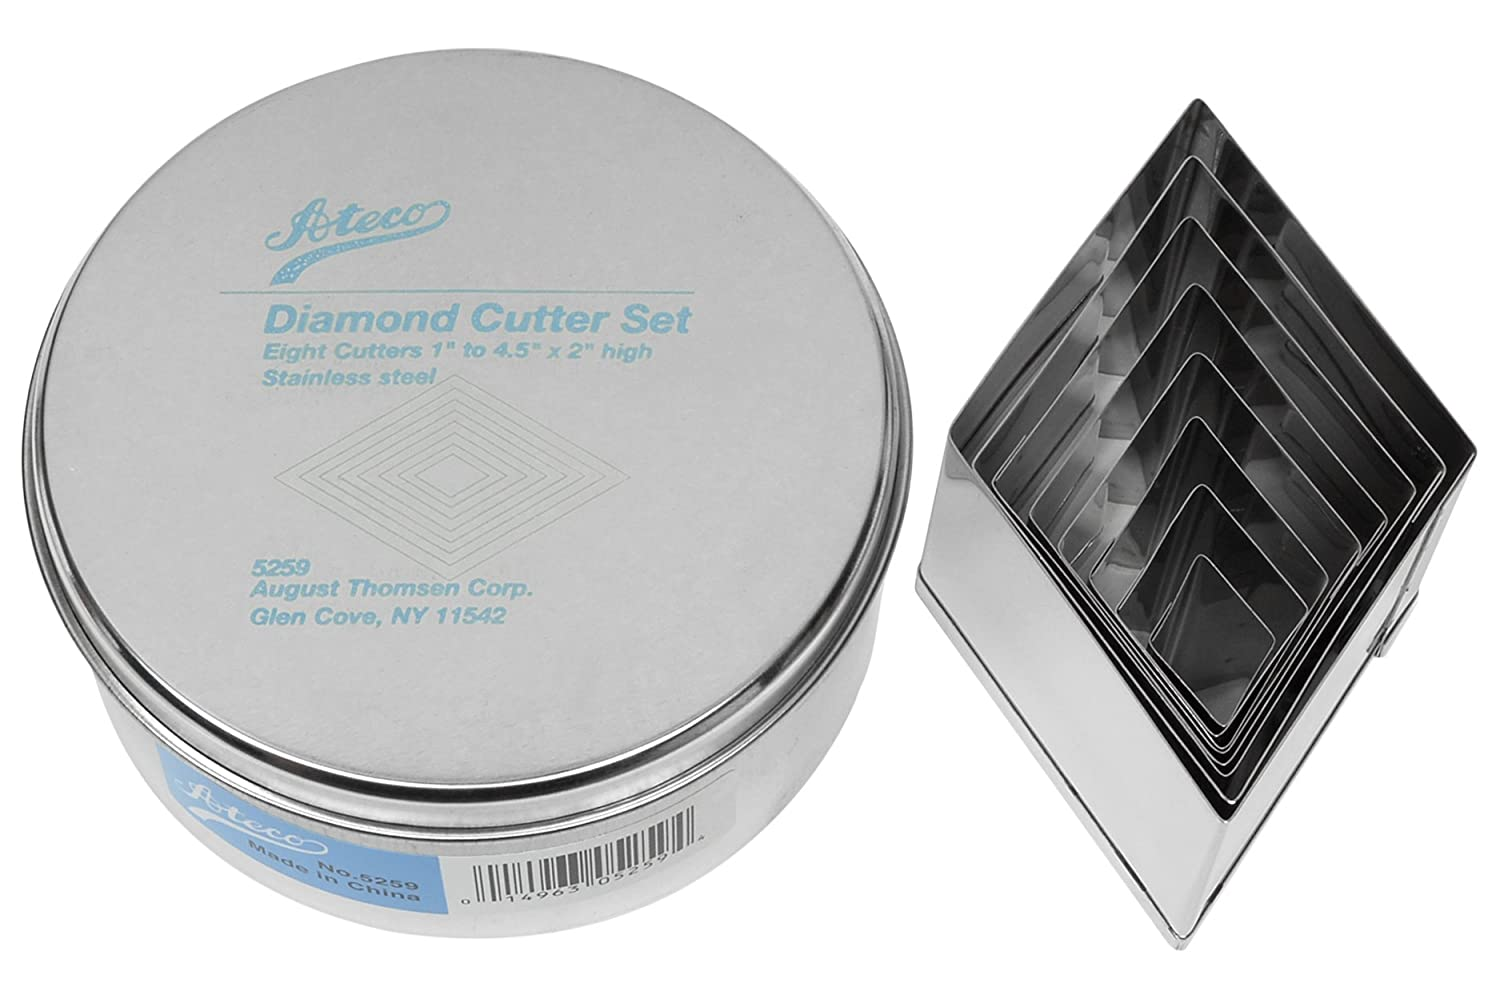 Ateco Stainless Steel Cutter Sets